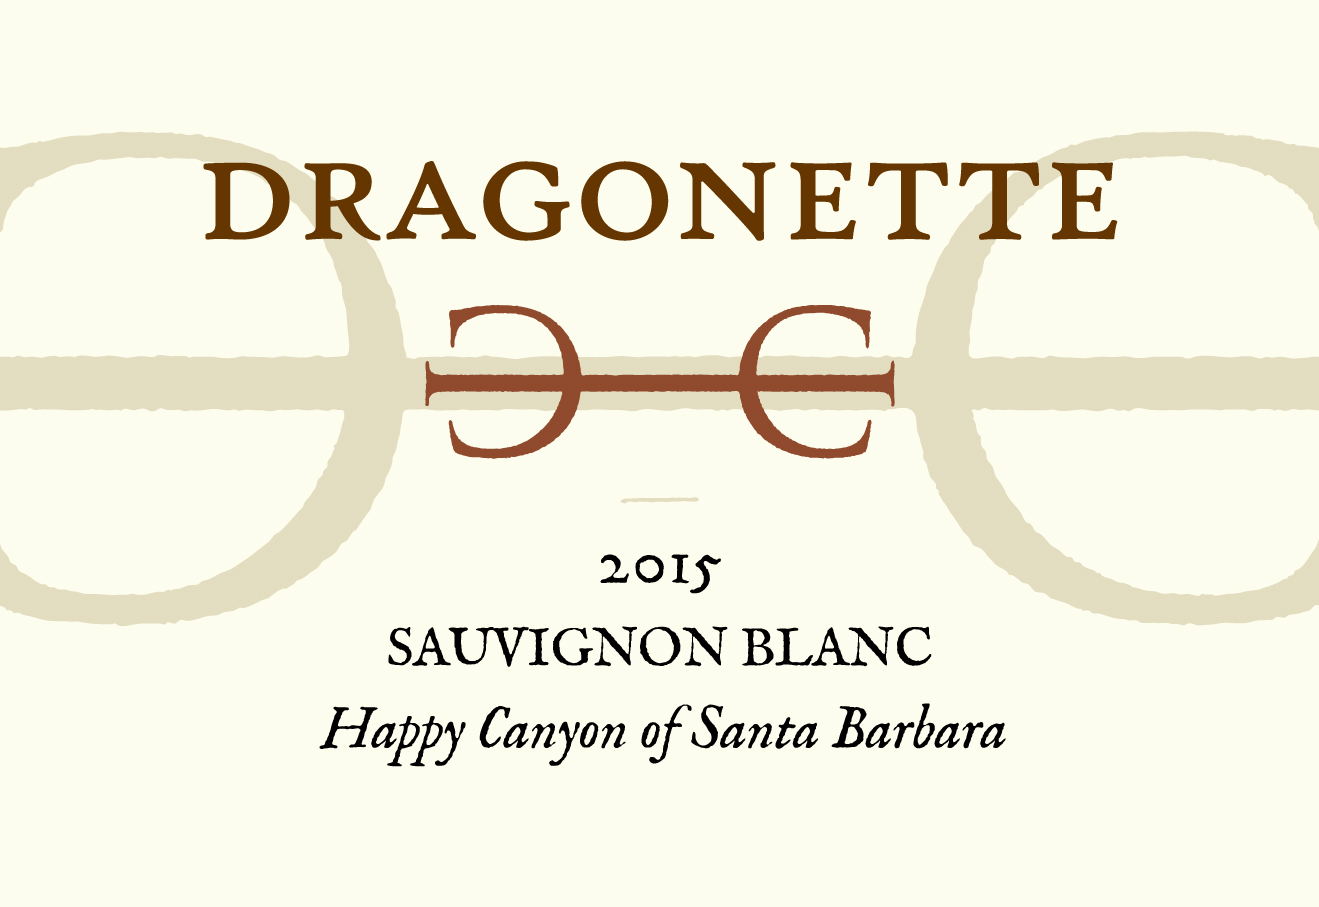 2015 Sauvignon Blanc, Happy Canyon of Santa Barbara